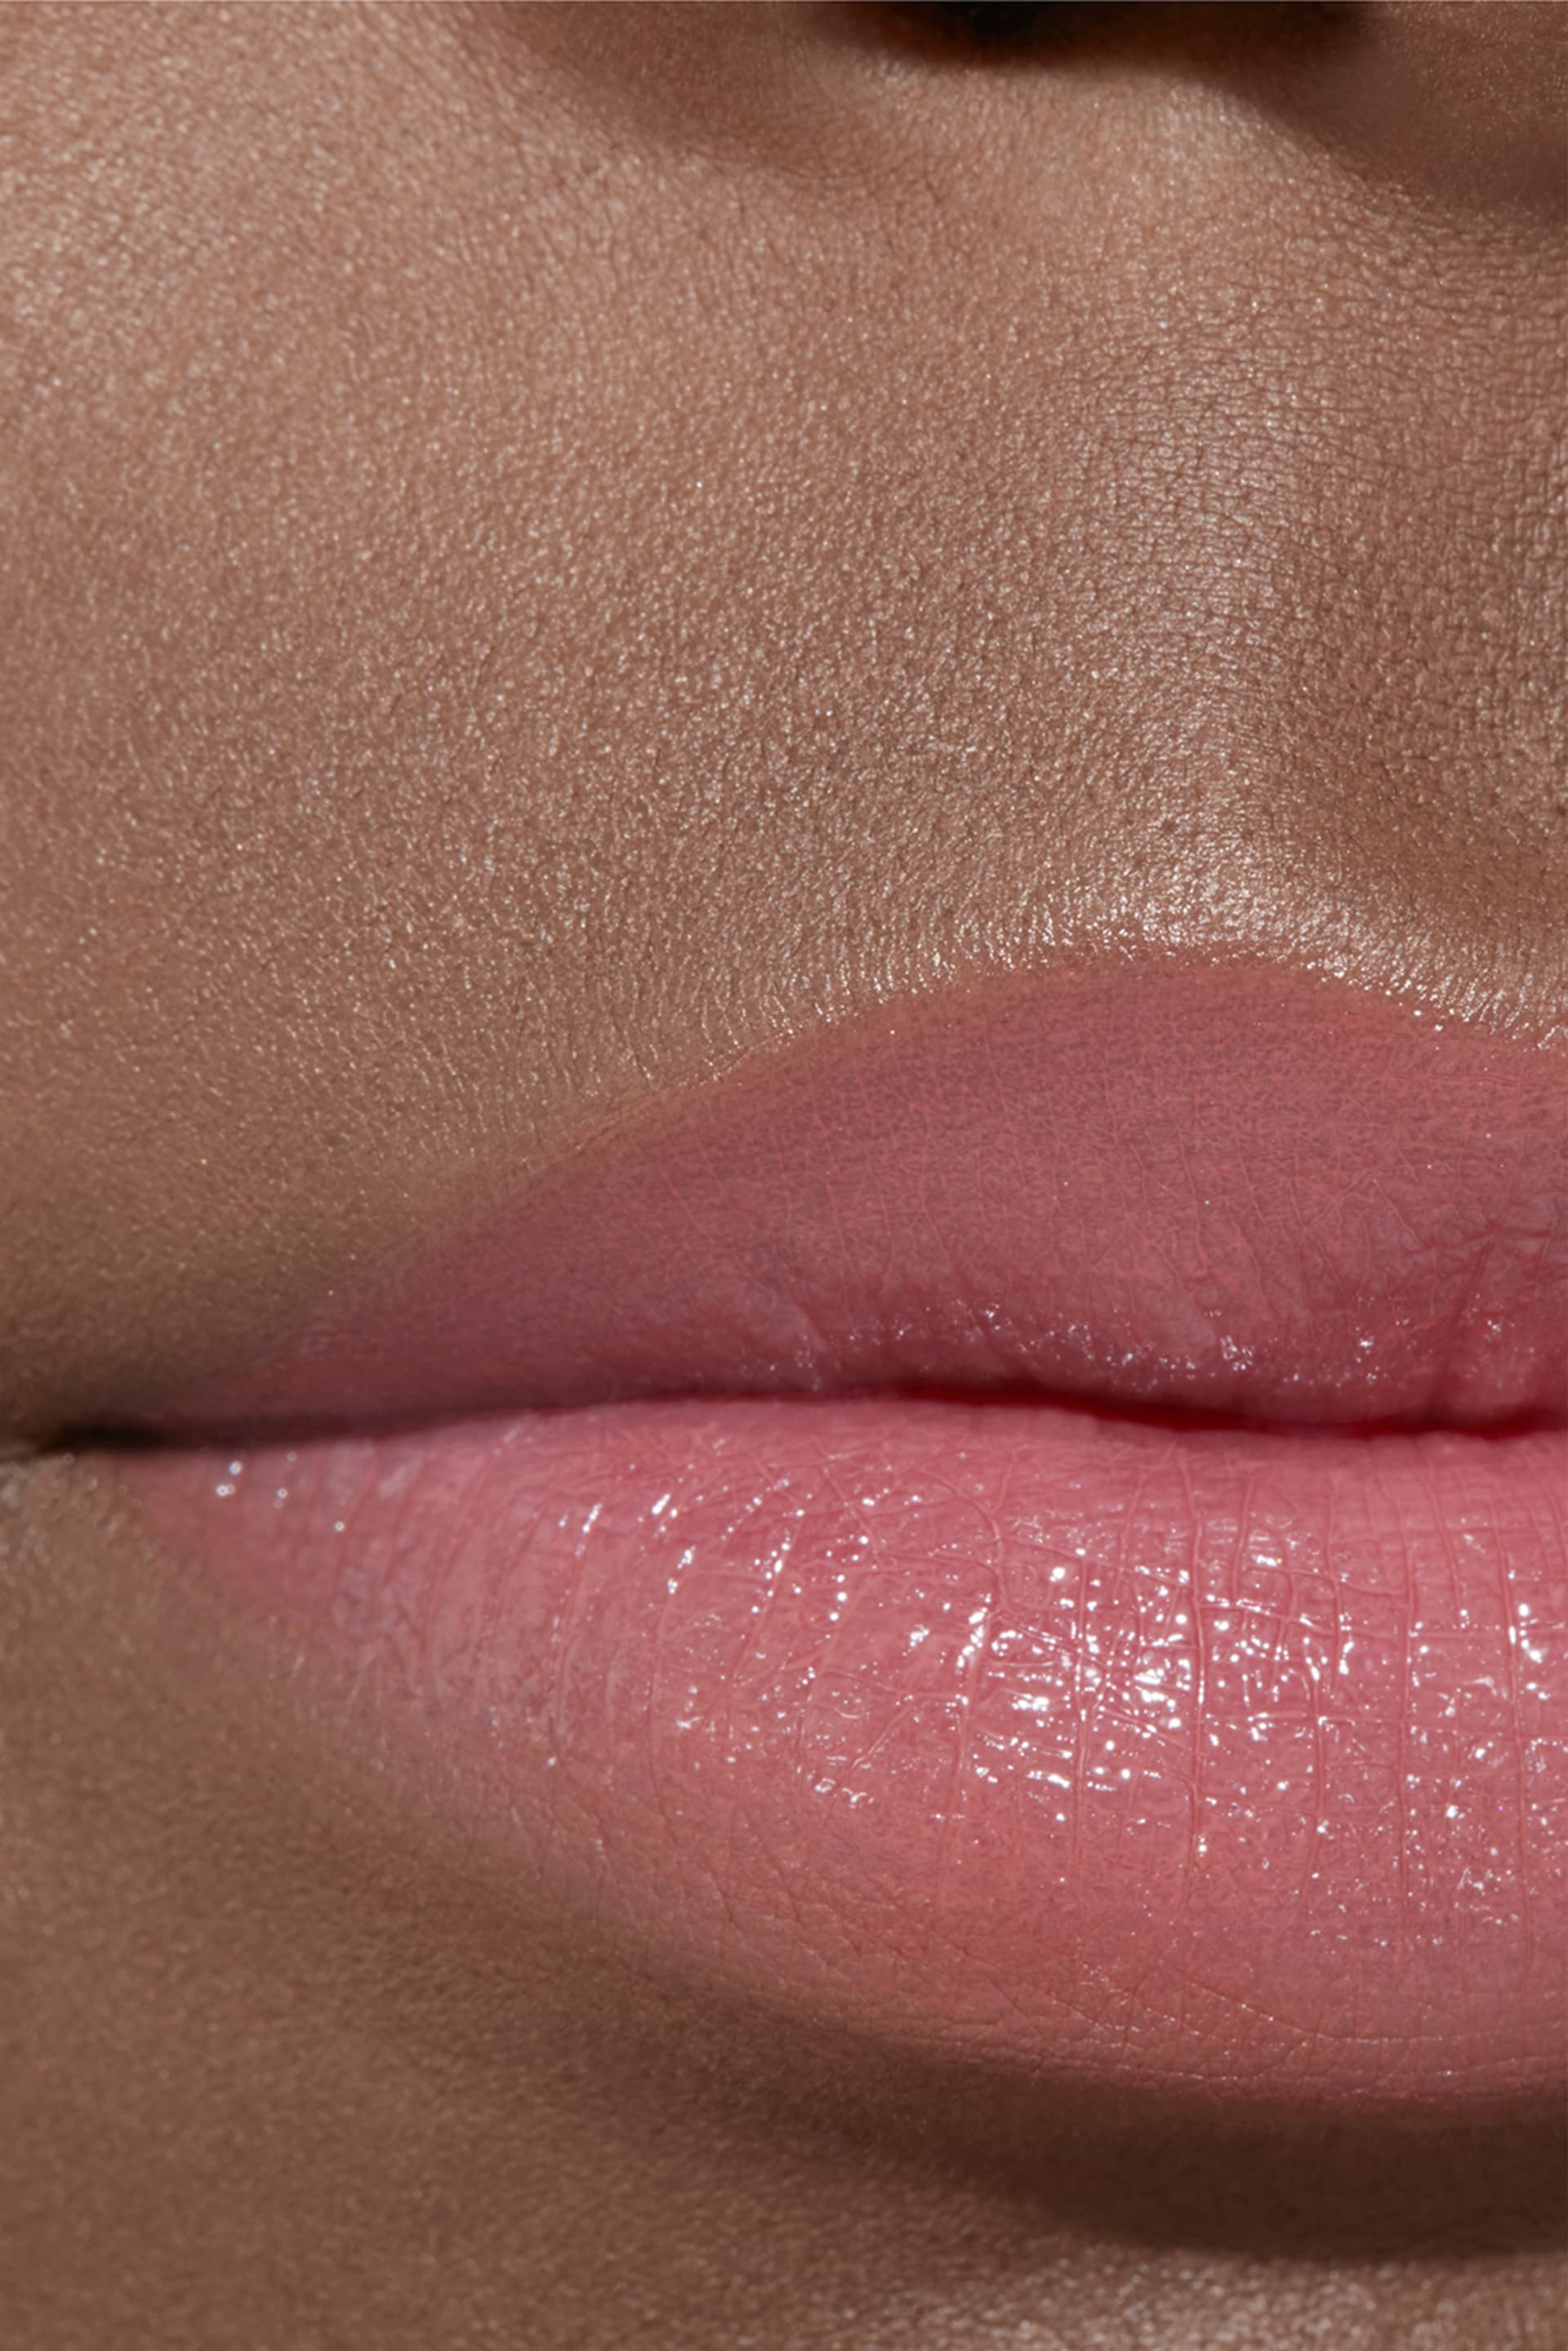 Application makeup visual 2 - ROUGE COCO STYLO 230 - ROSE ÉCLATANT